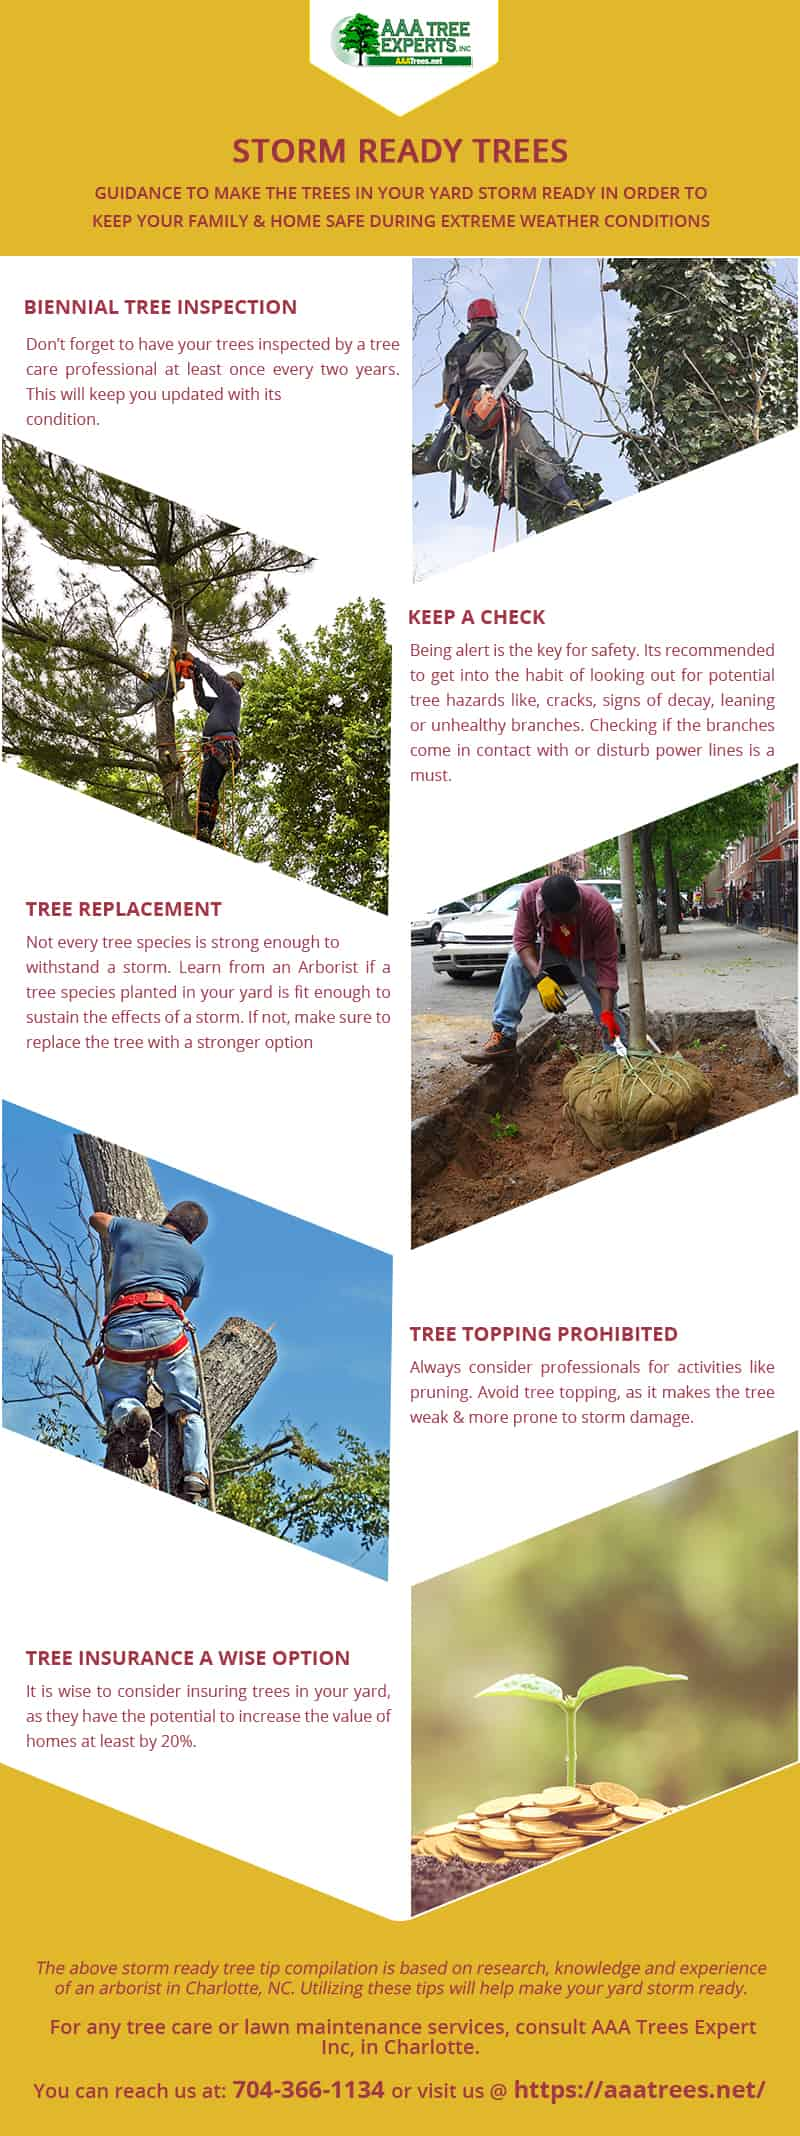 How to Prepare your Trees for Storm Season